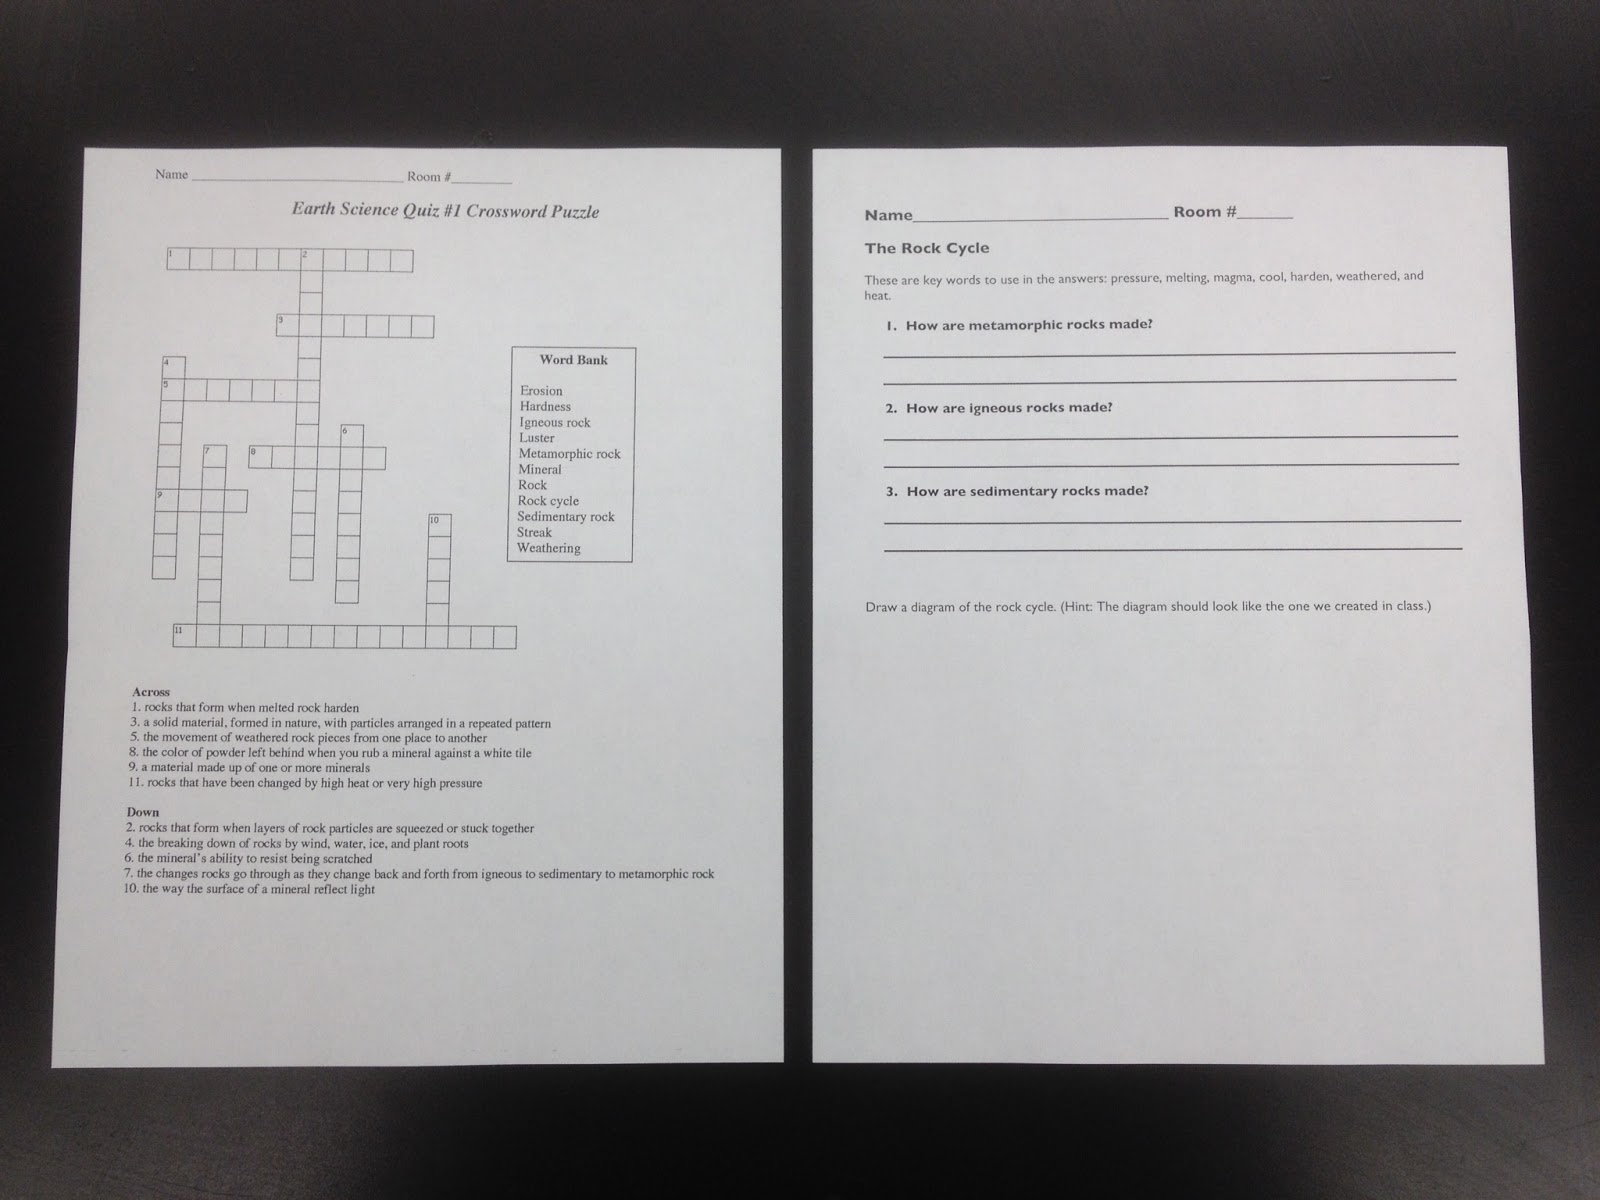 Mr gantts earth science lab blog 4th grade week 3 the rock cycle homework review crossword puzzle ccuart